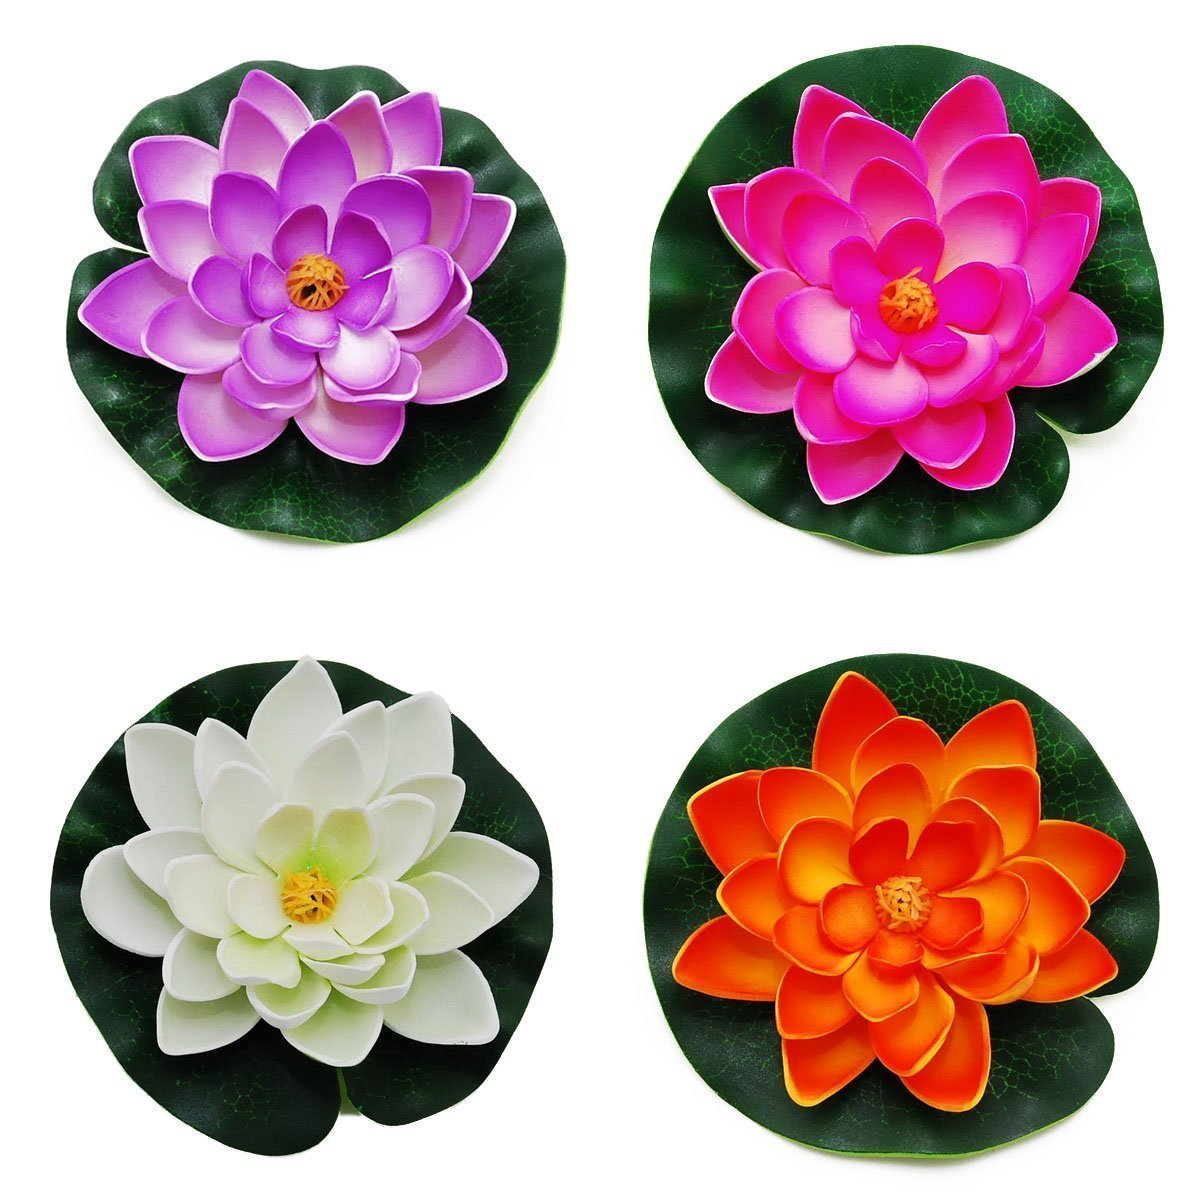 4pcs-Pond-Floating-Pond-Decor-Water-LilyArtificial-Floating-Foam-Lotus-Flower